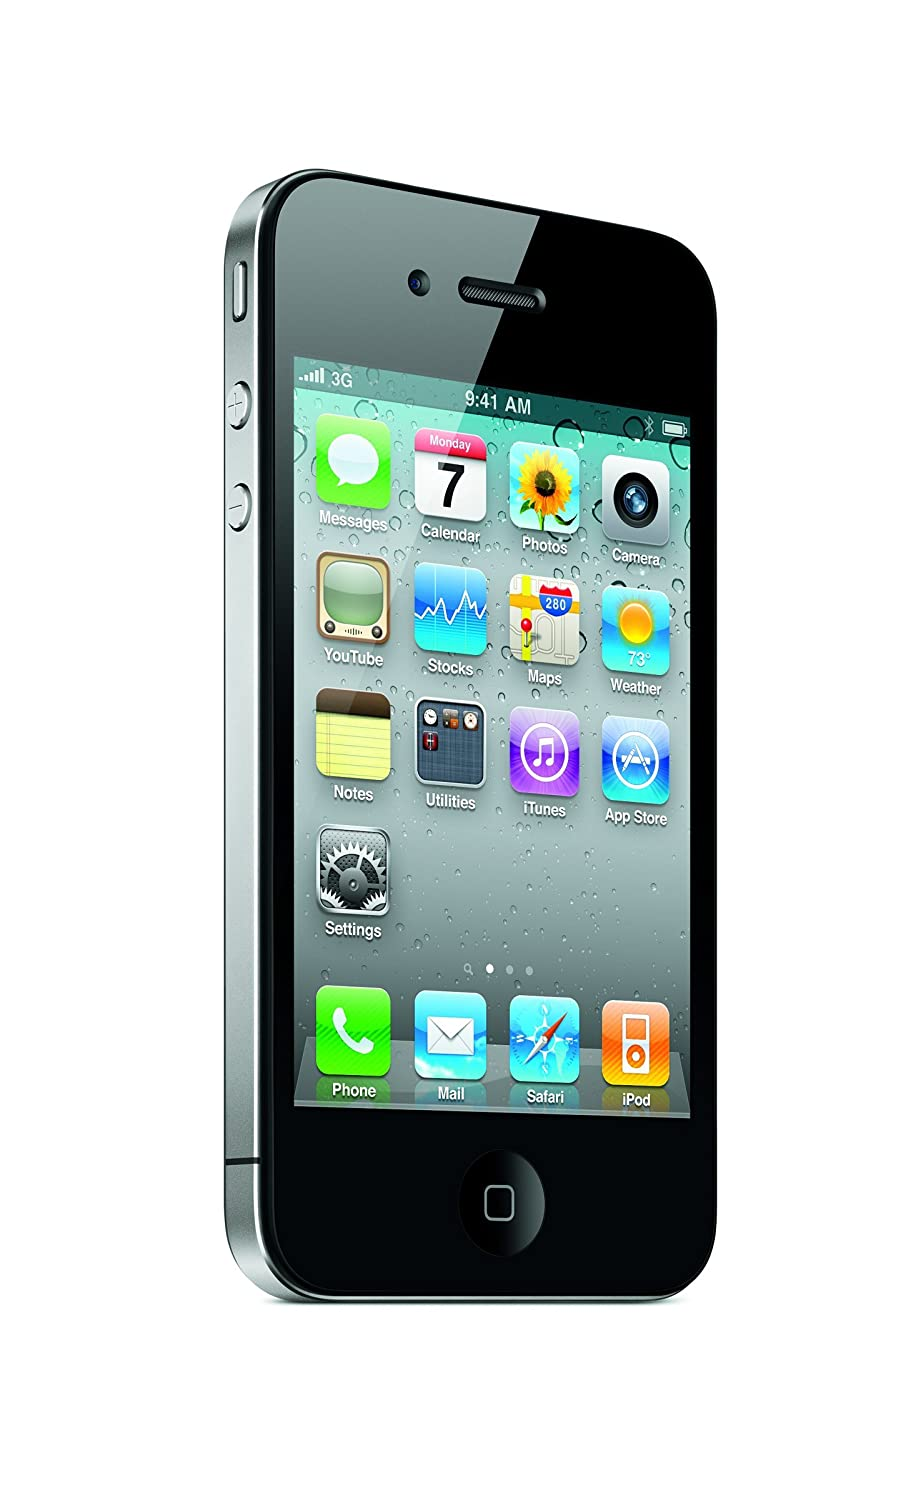 AT-T-Apple-iPhone-4-16GB-No-Contract-3G-GSM-Camera-Touch-WiFi-Smartphone